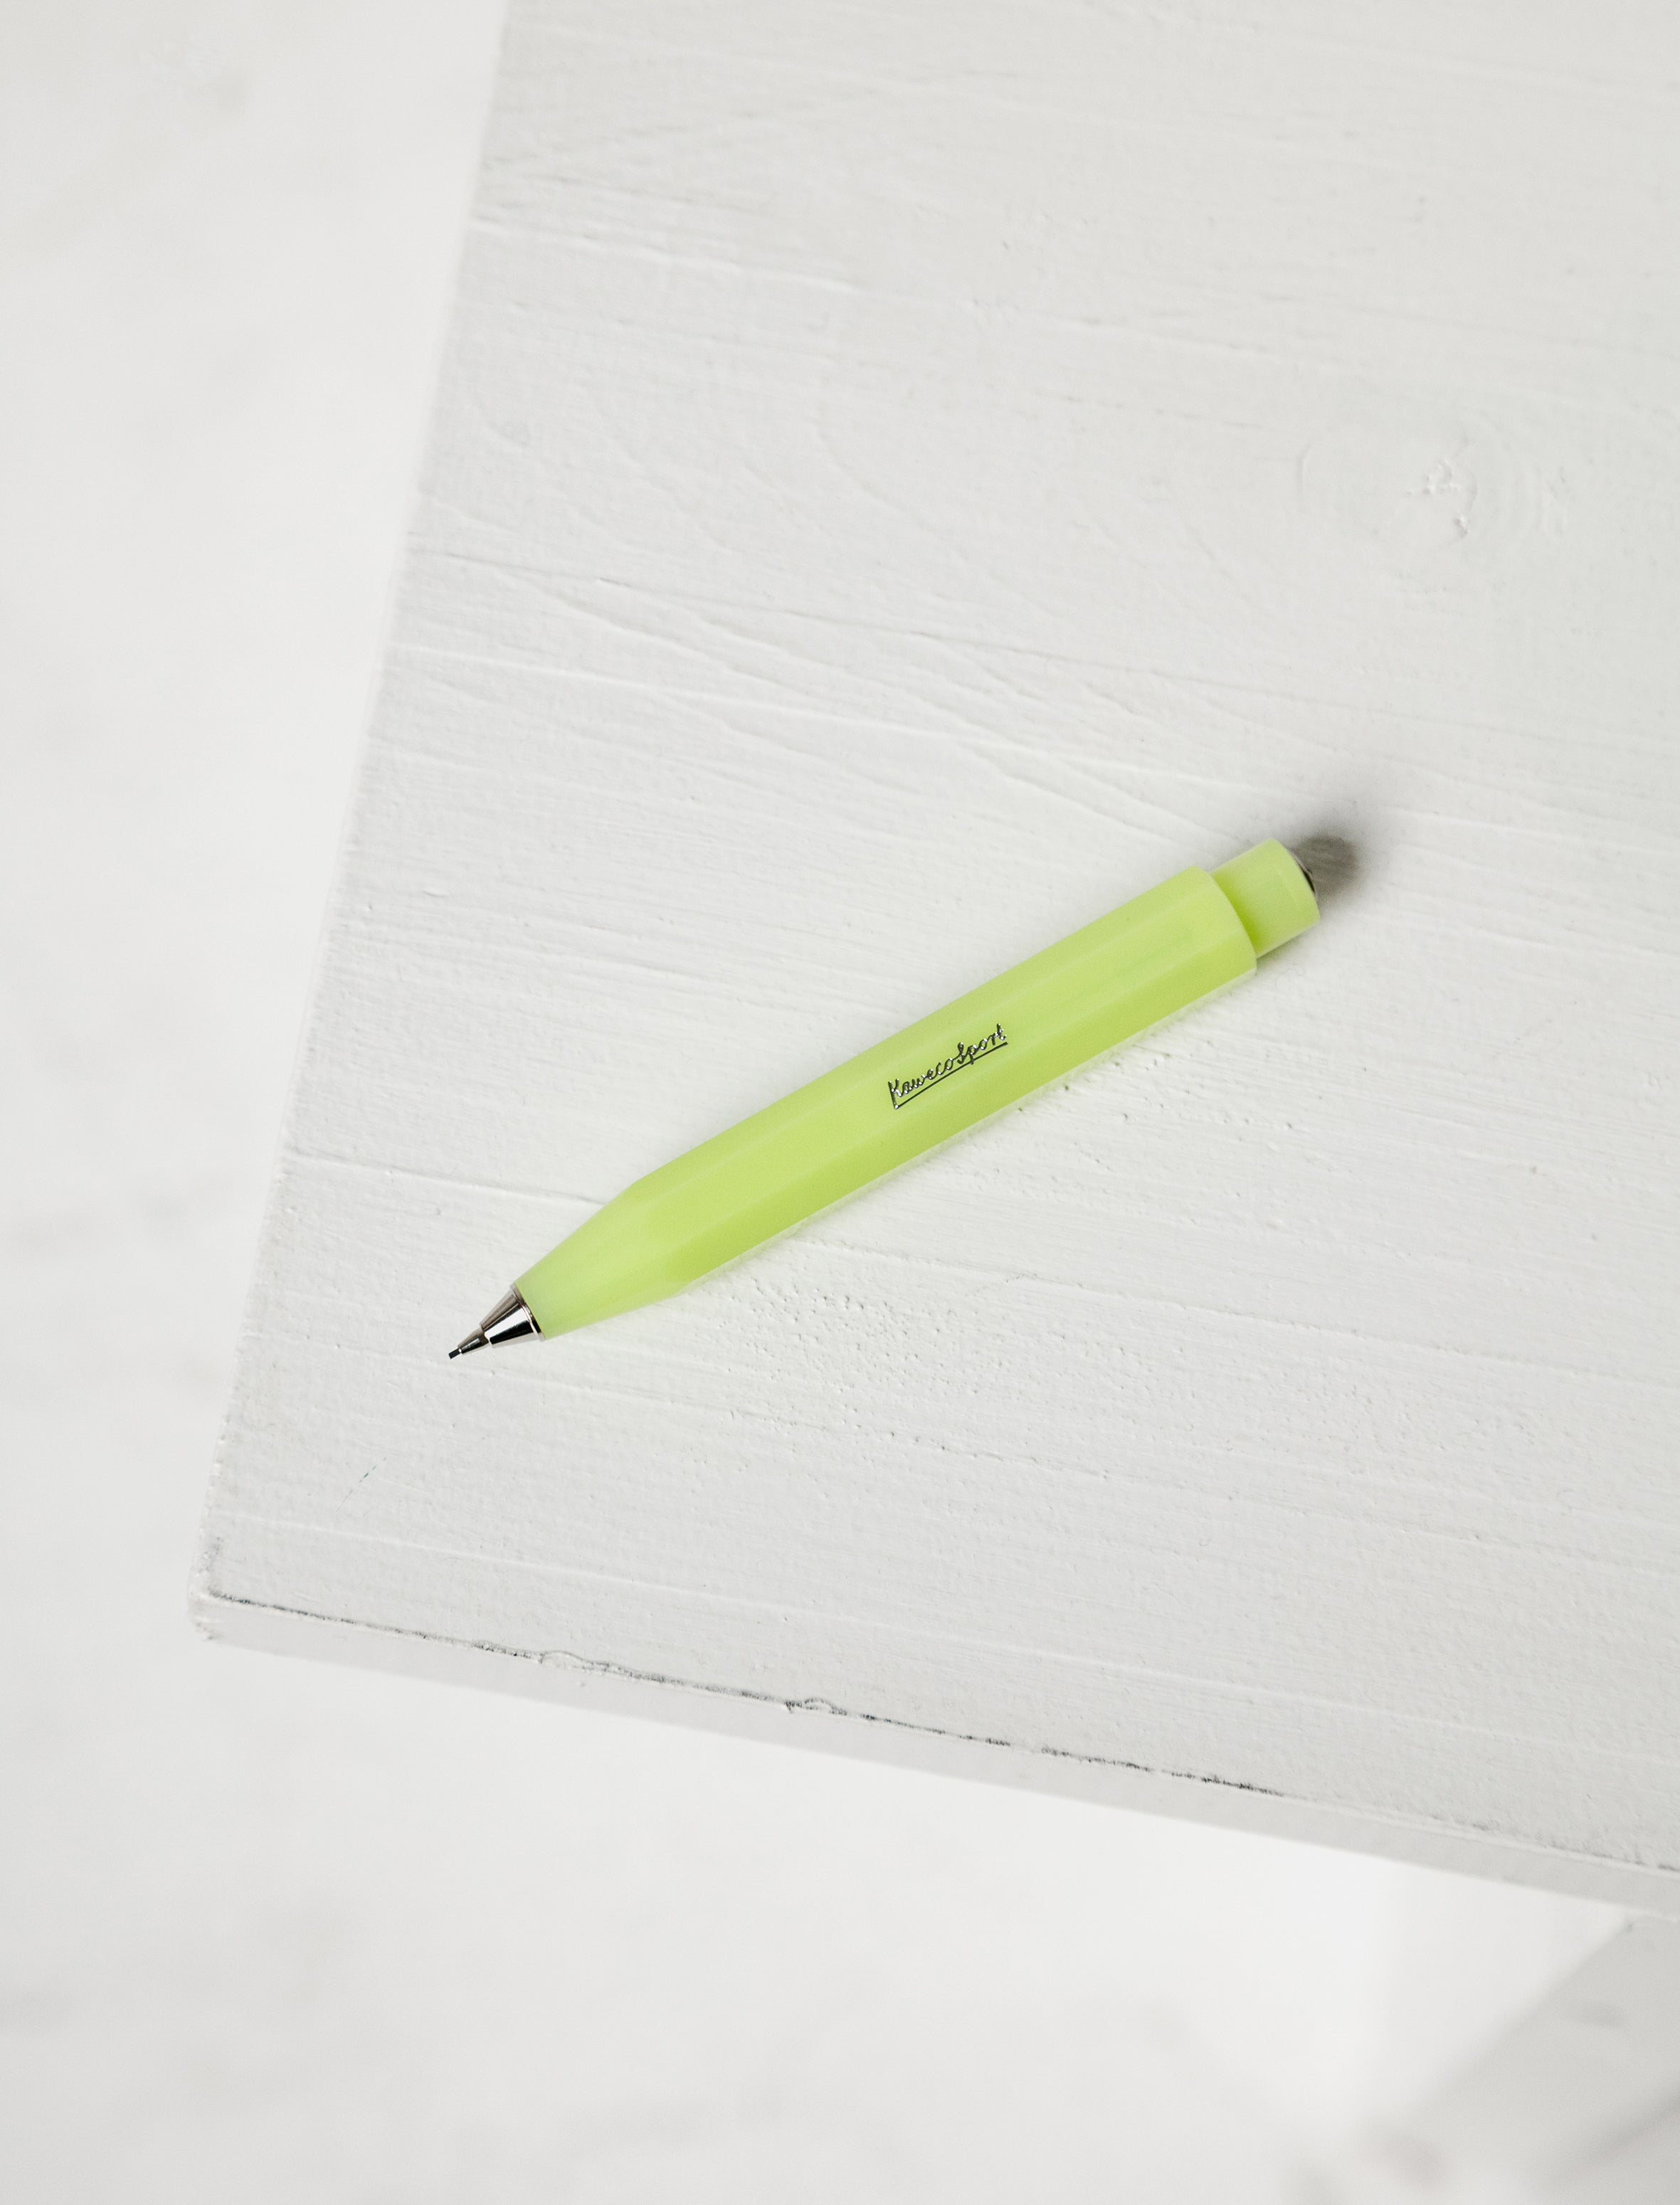 Kaweco Mechanical Pencil 0.7 Frosted Lime